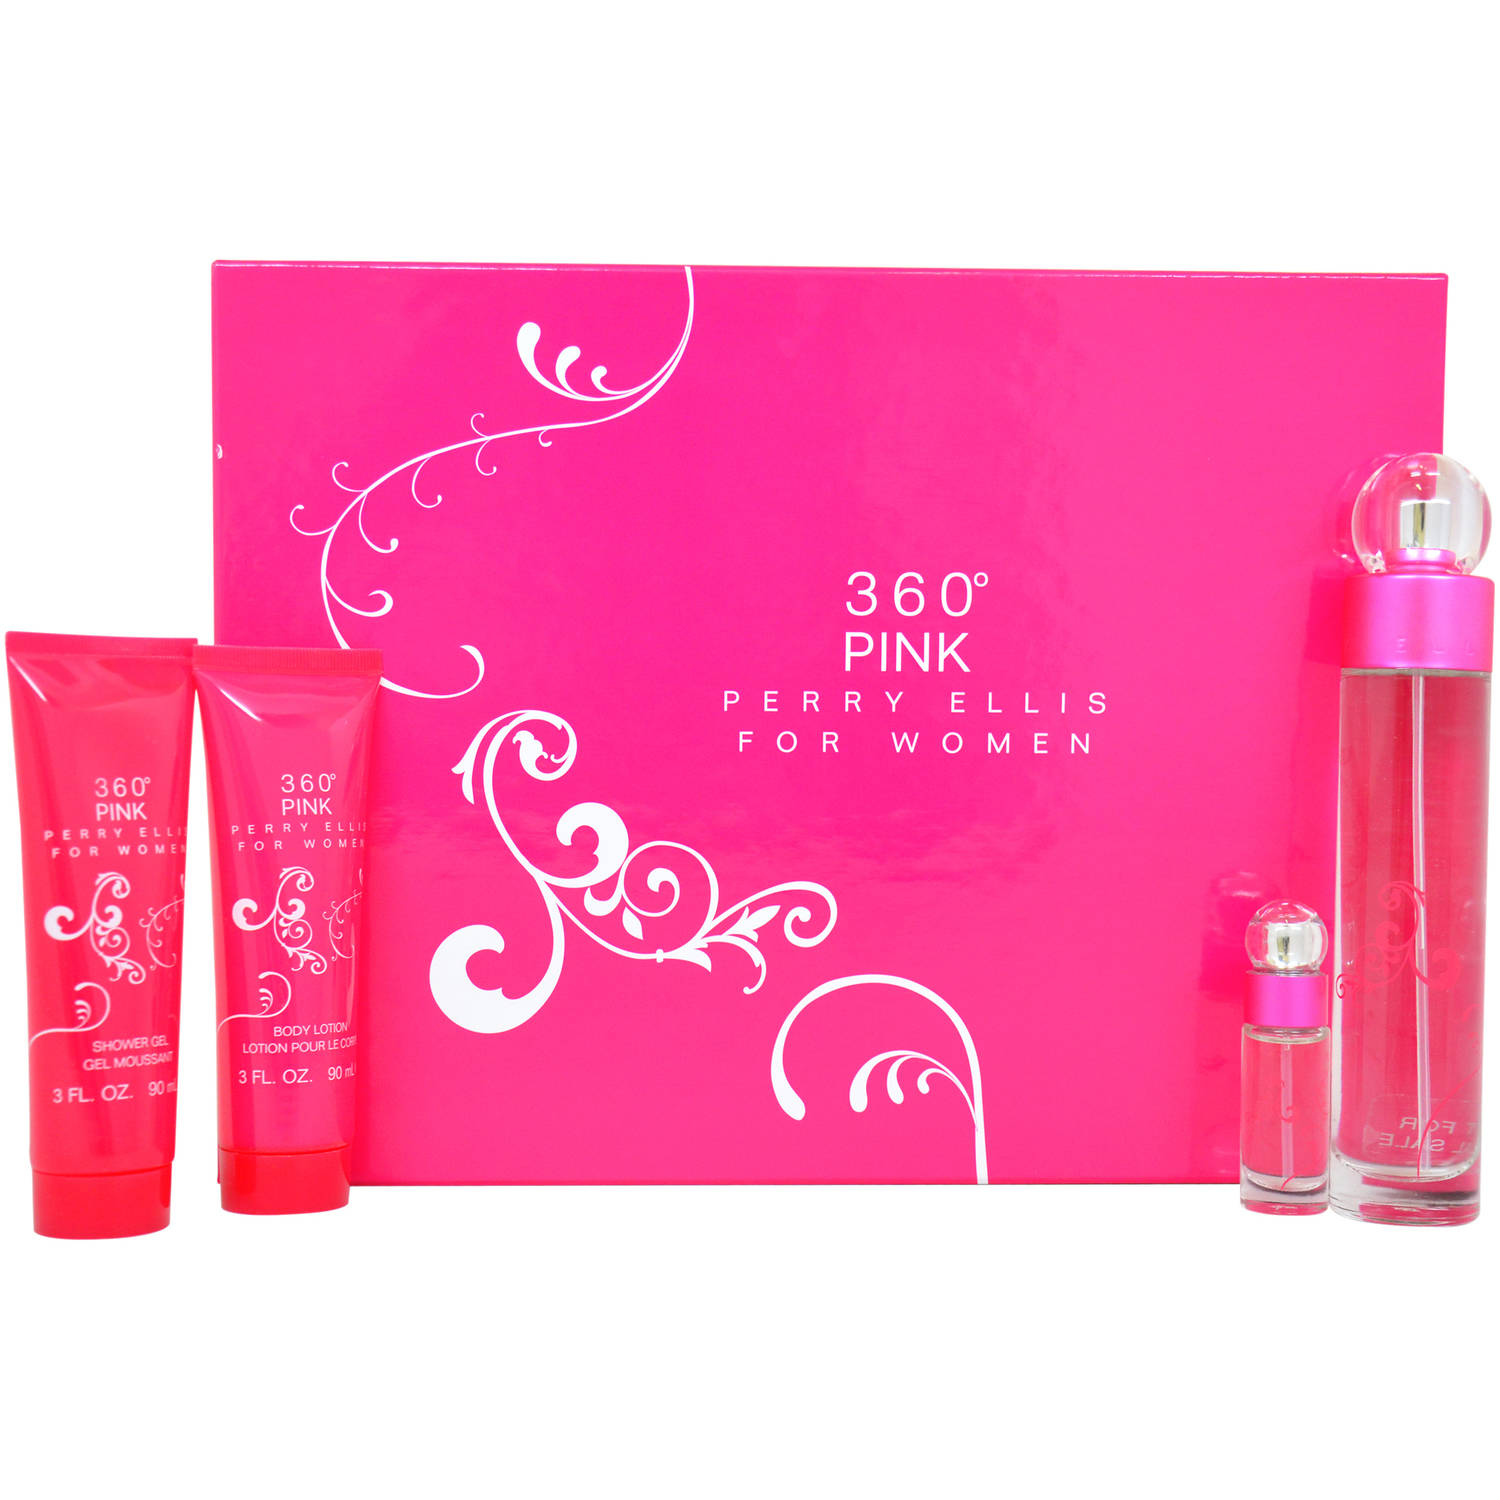 Perry Ellis 360 Pink for Women Gift Set, 4 pc